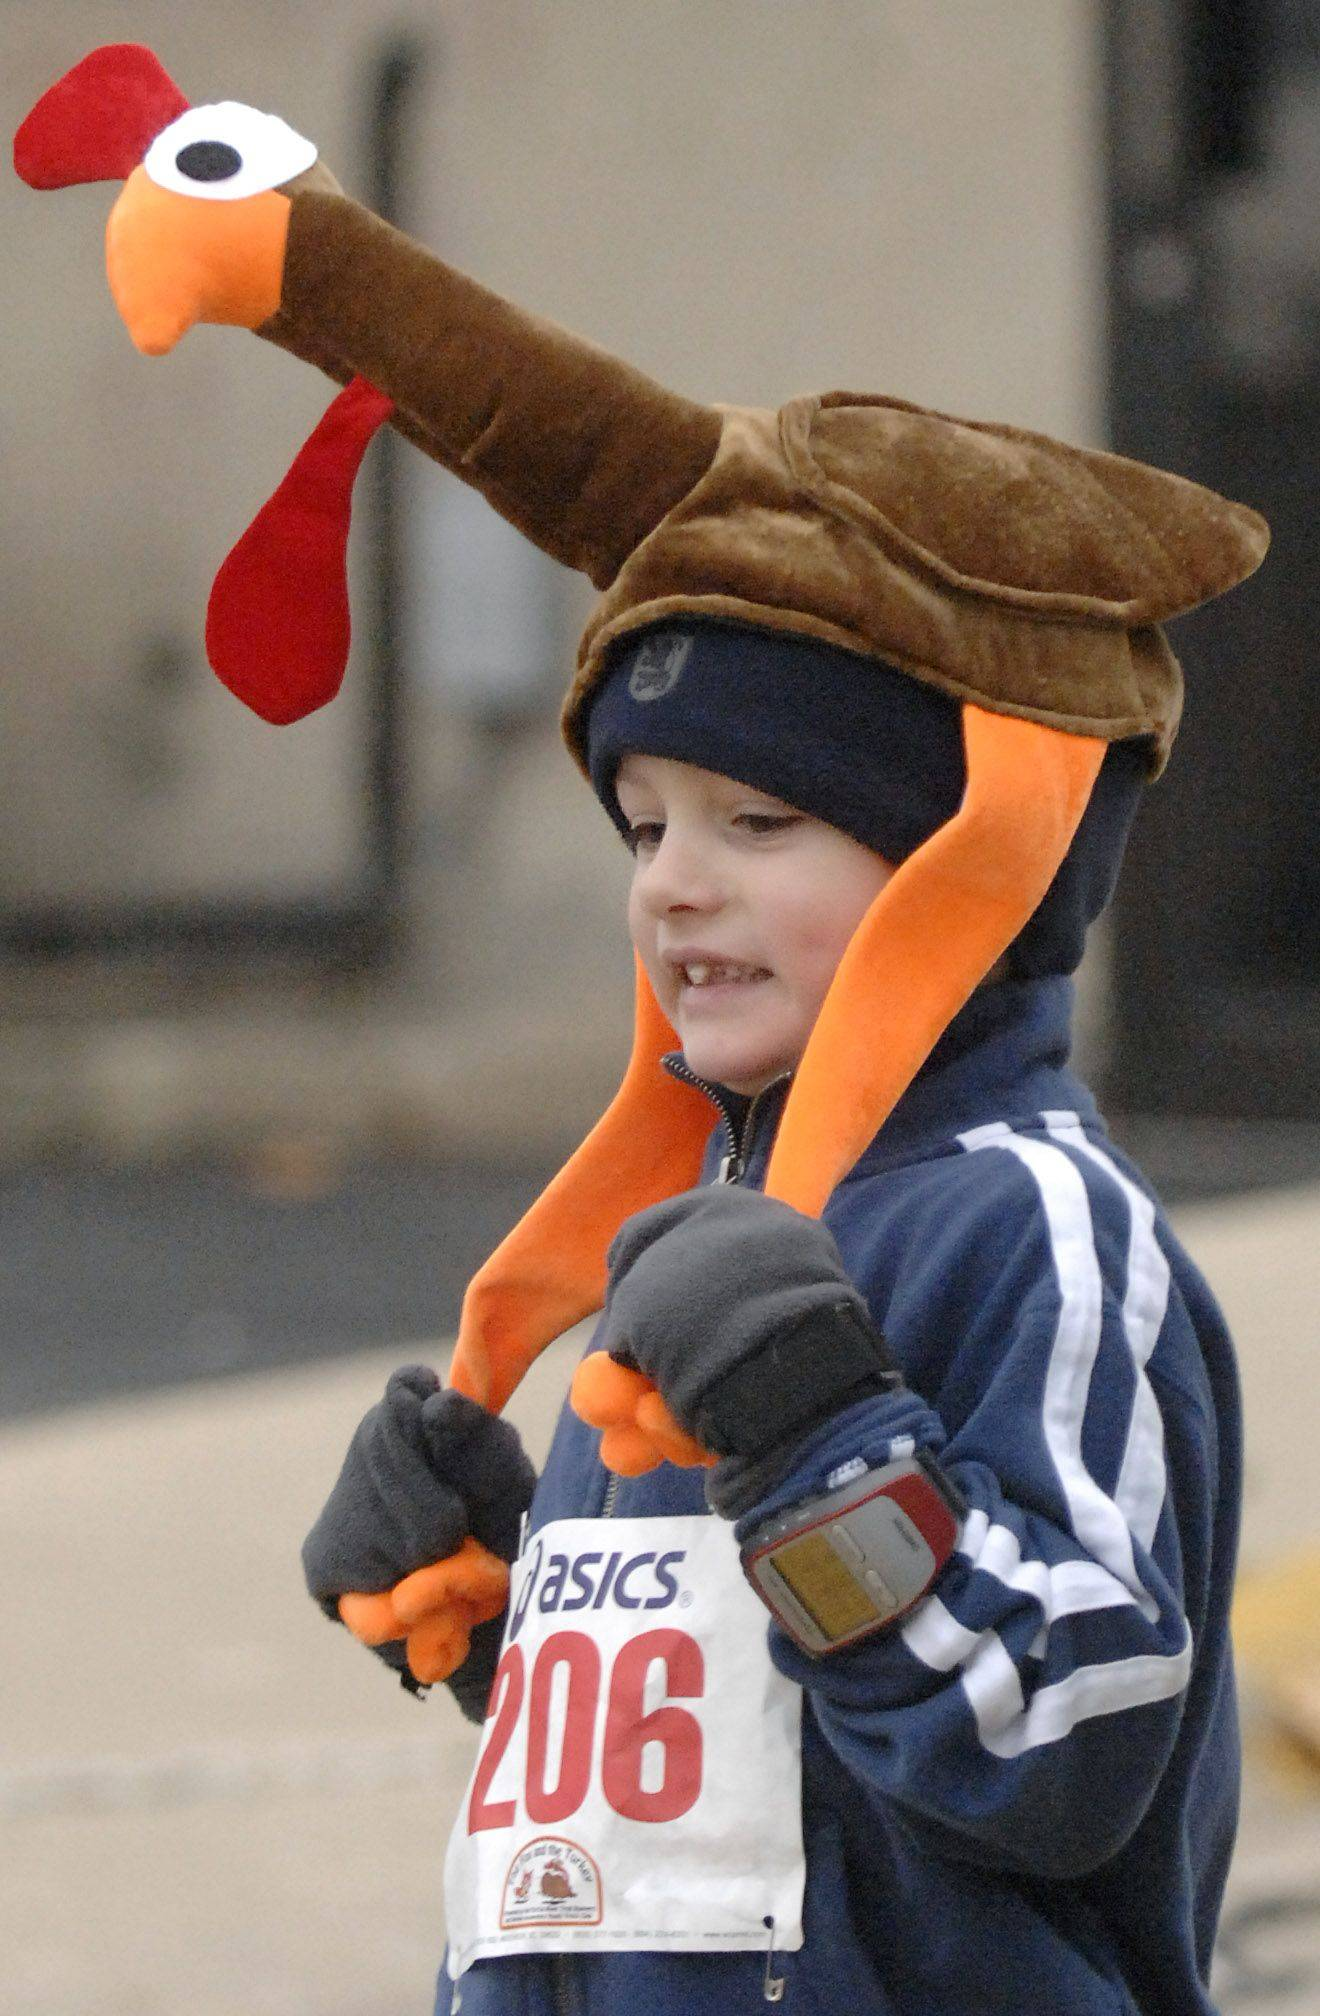 Lucas Rohan, 6, of Batavia hangs on tight to the legs of his turkey hat as he nears the finish line for the 15th annual Fox and the Turkey Youth Mile run in Batavia on Thanksgiving morning.